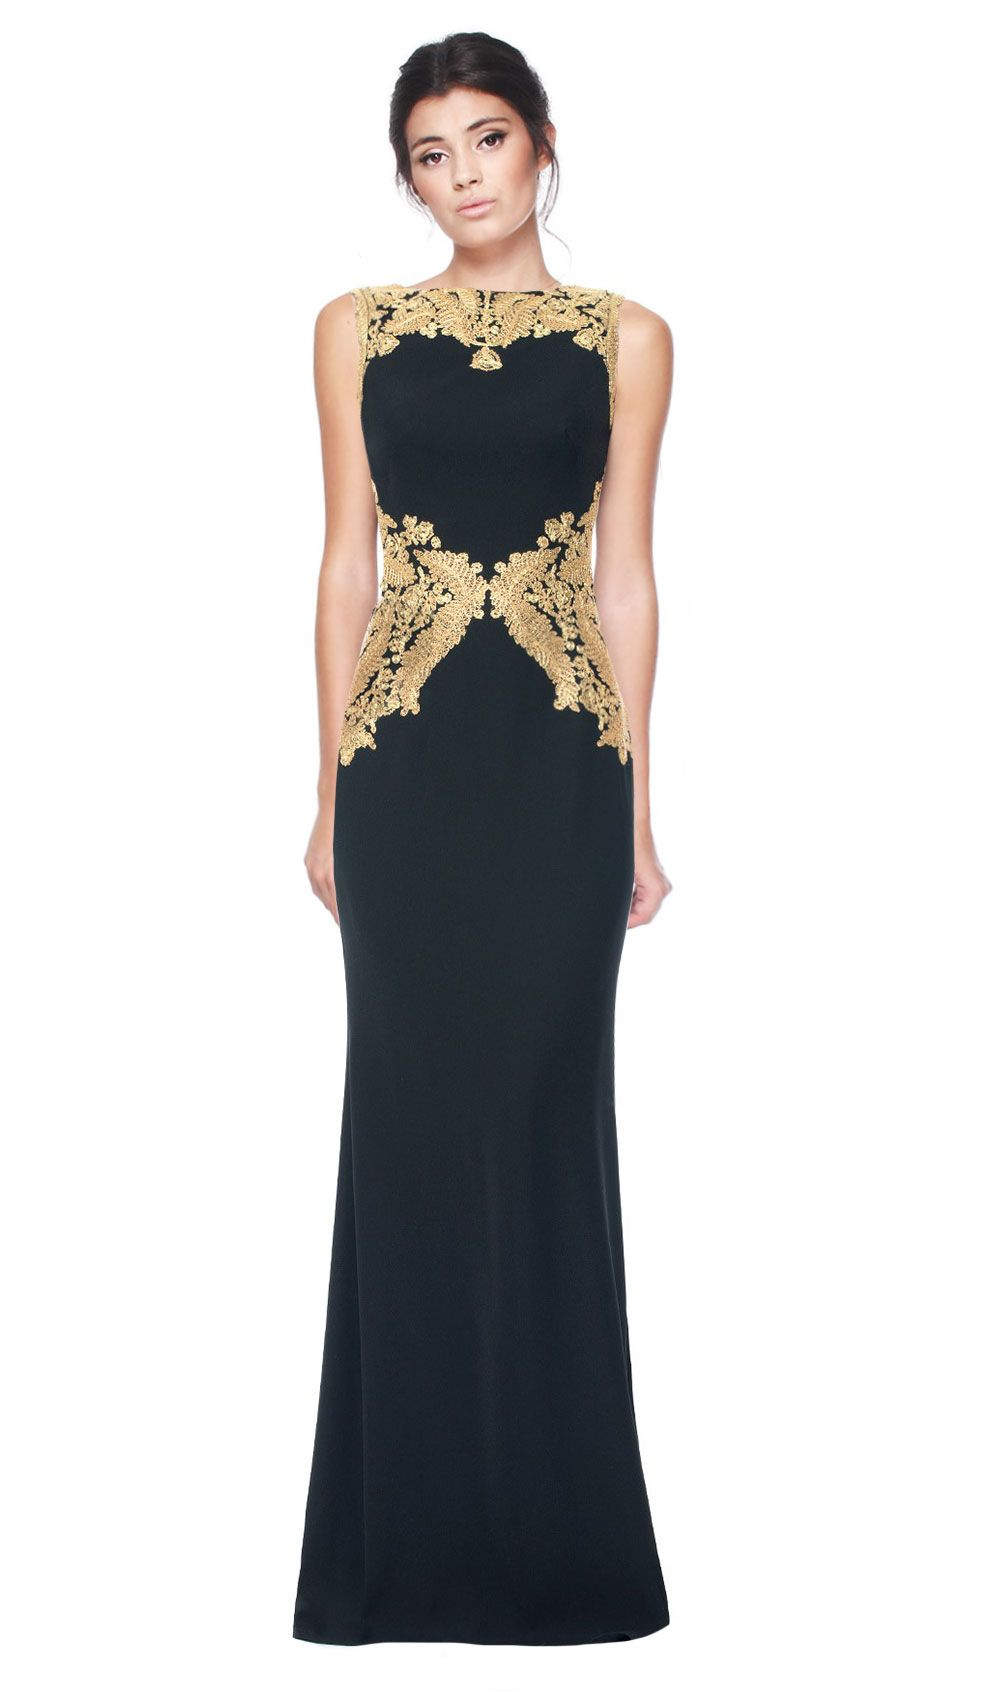 Tadashi Shoji Gold Embroidered Shift Gown   Chic by Choice   Hire ...